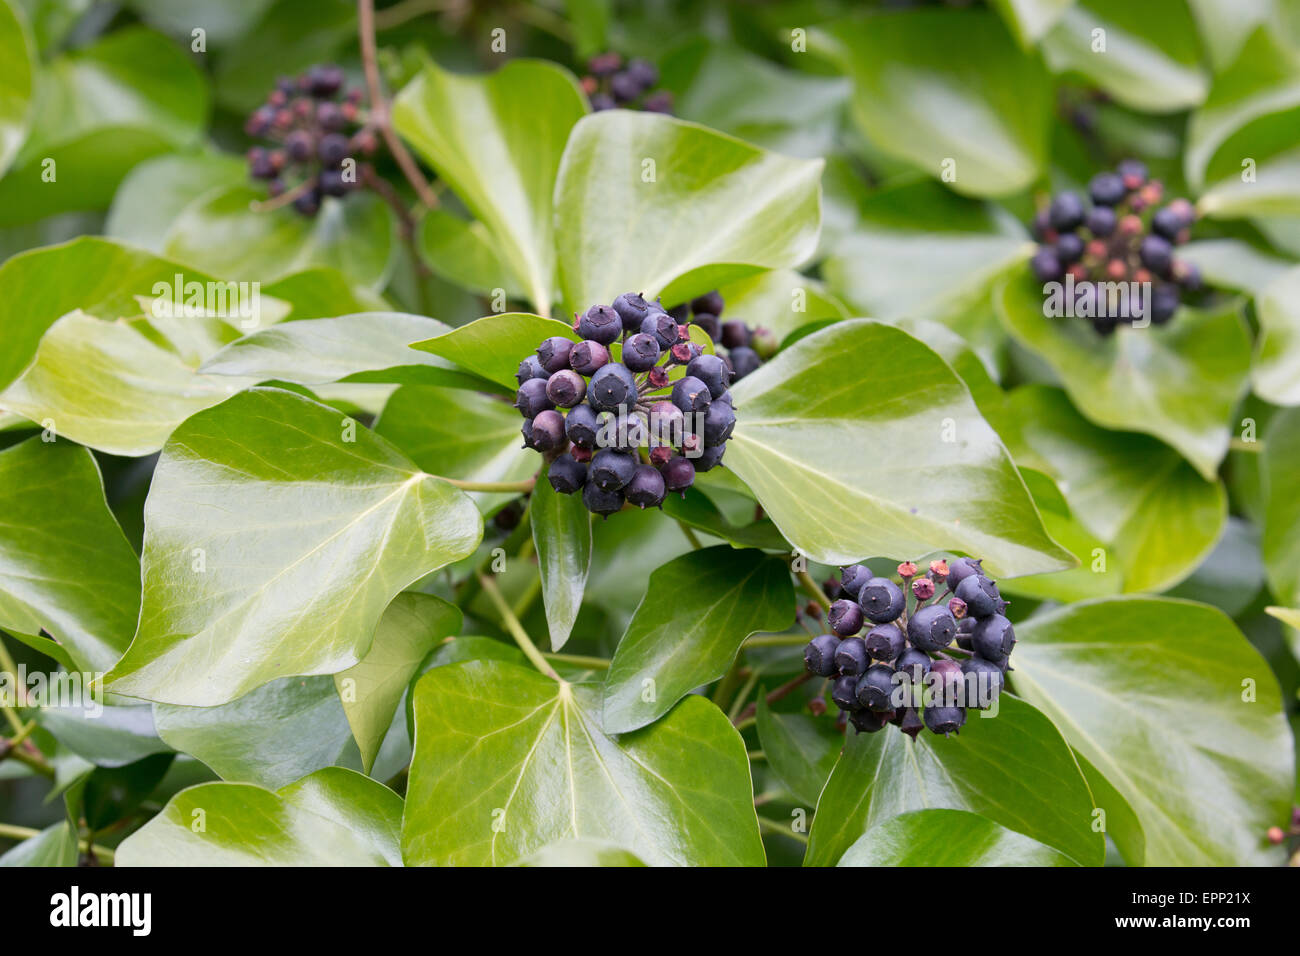 Ivy Hedera helix leaves and black berries in woodland UK Stock Photo